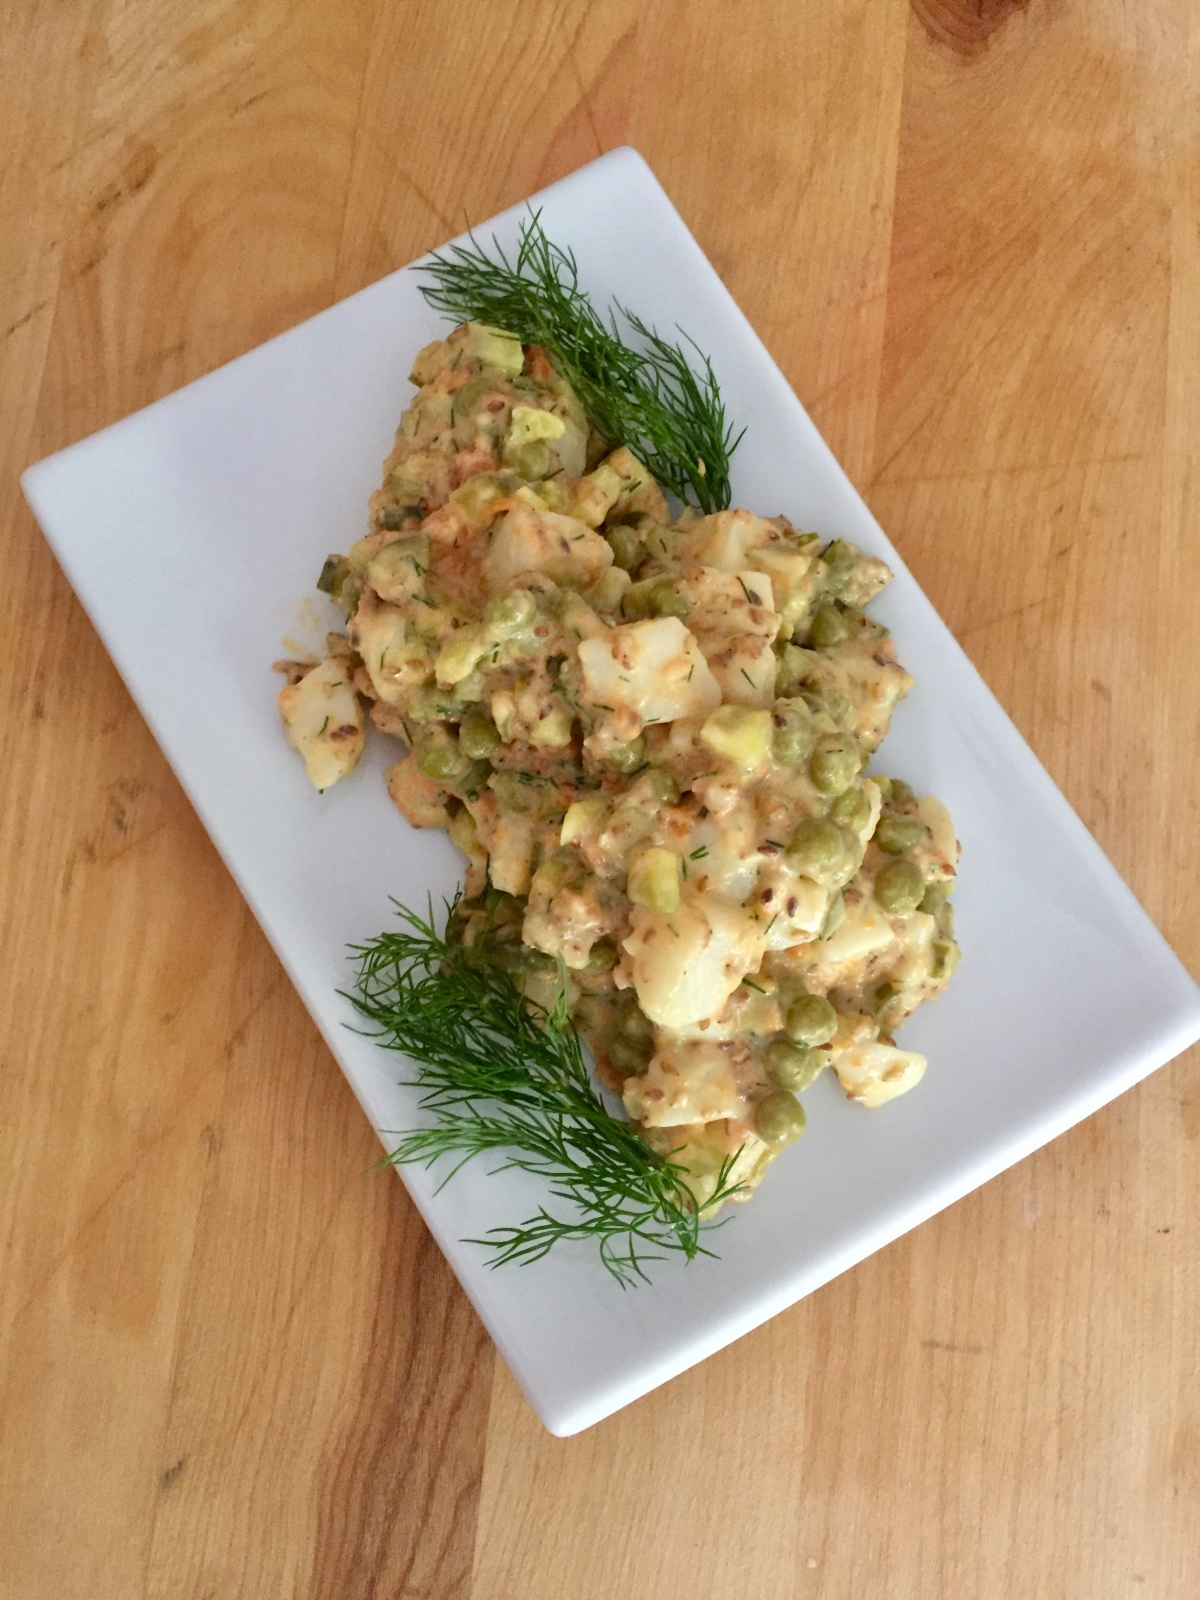 Vegan Olivier Salad with Toasted Sesame Seeds